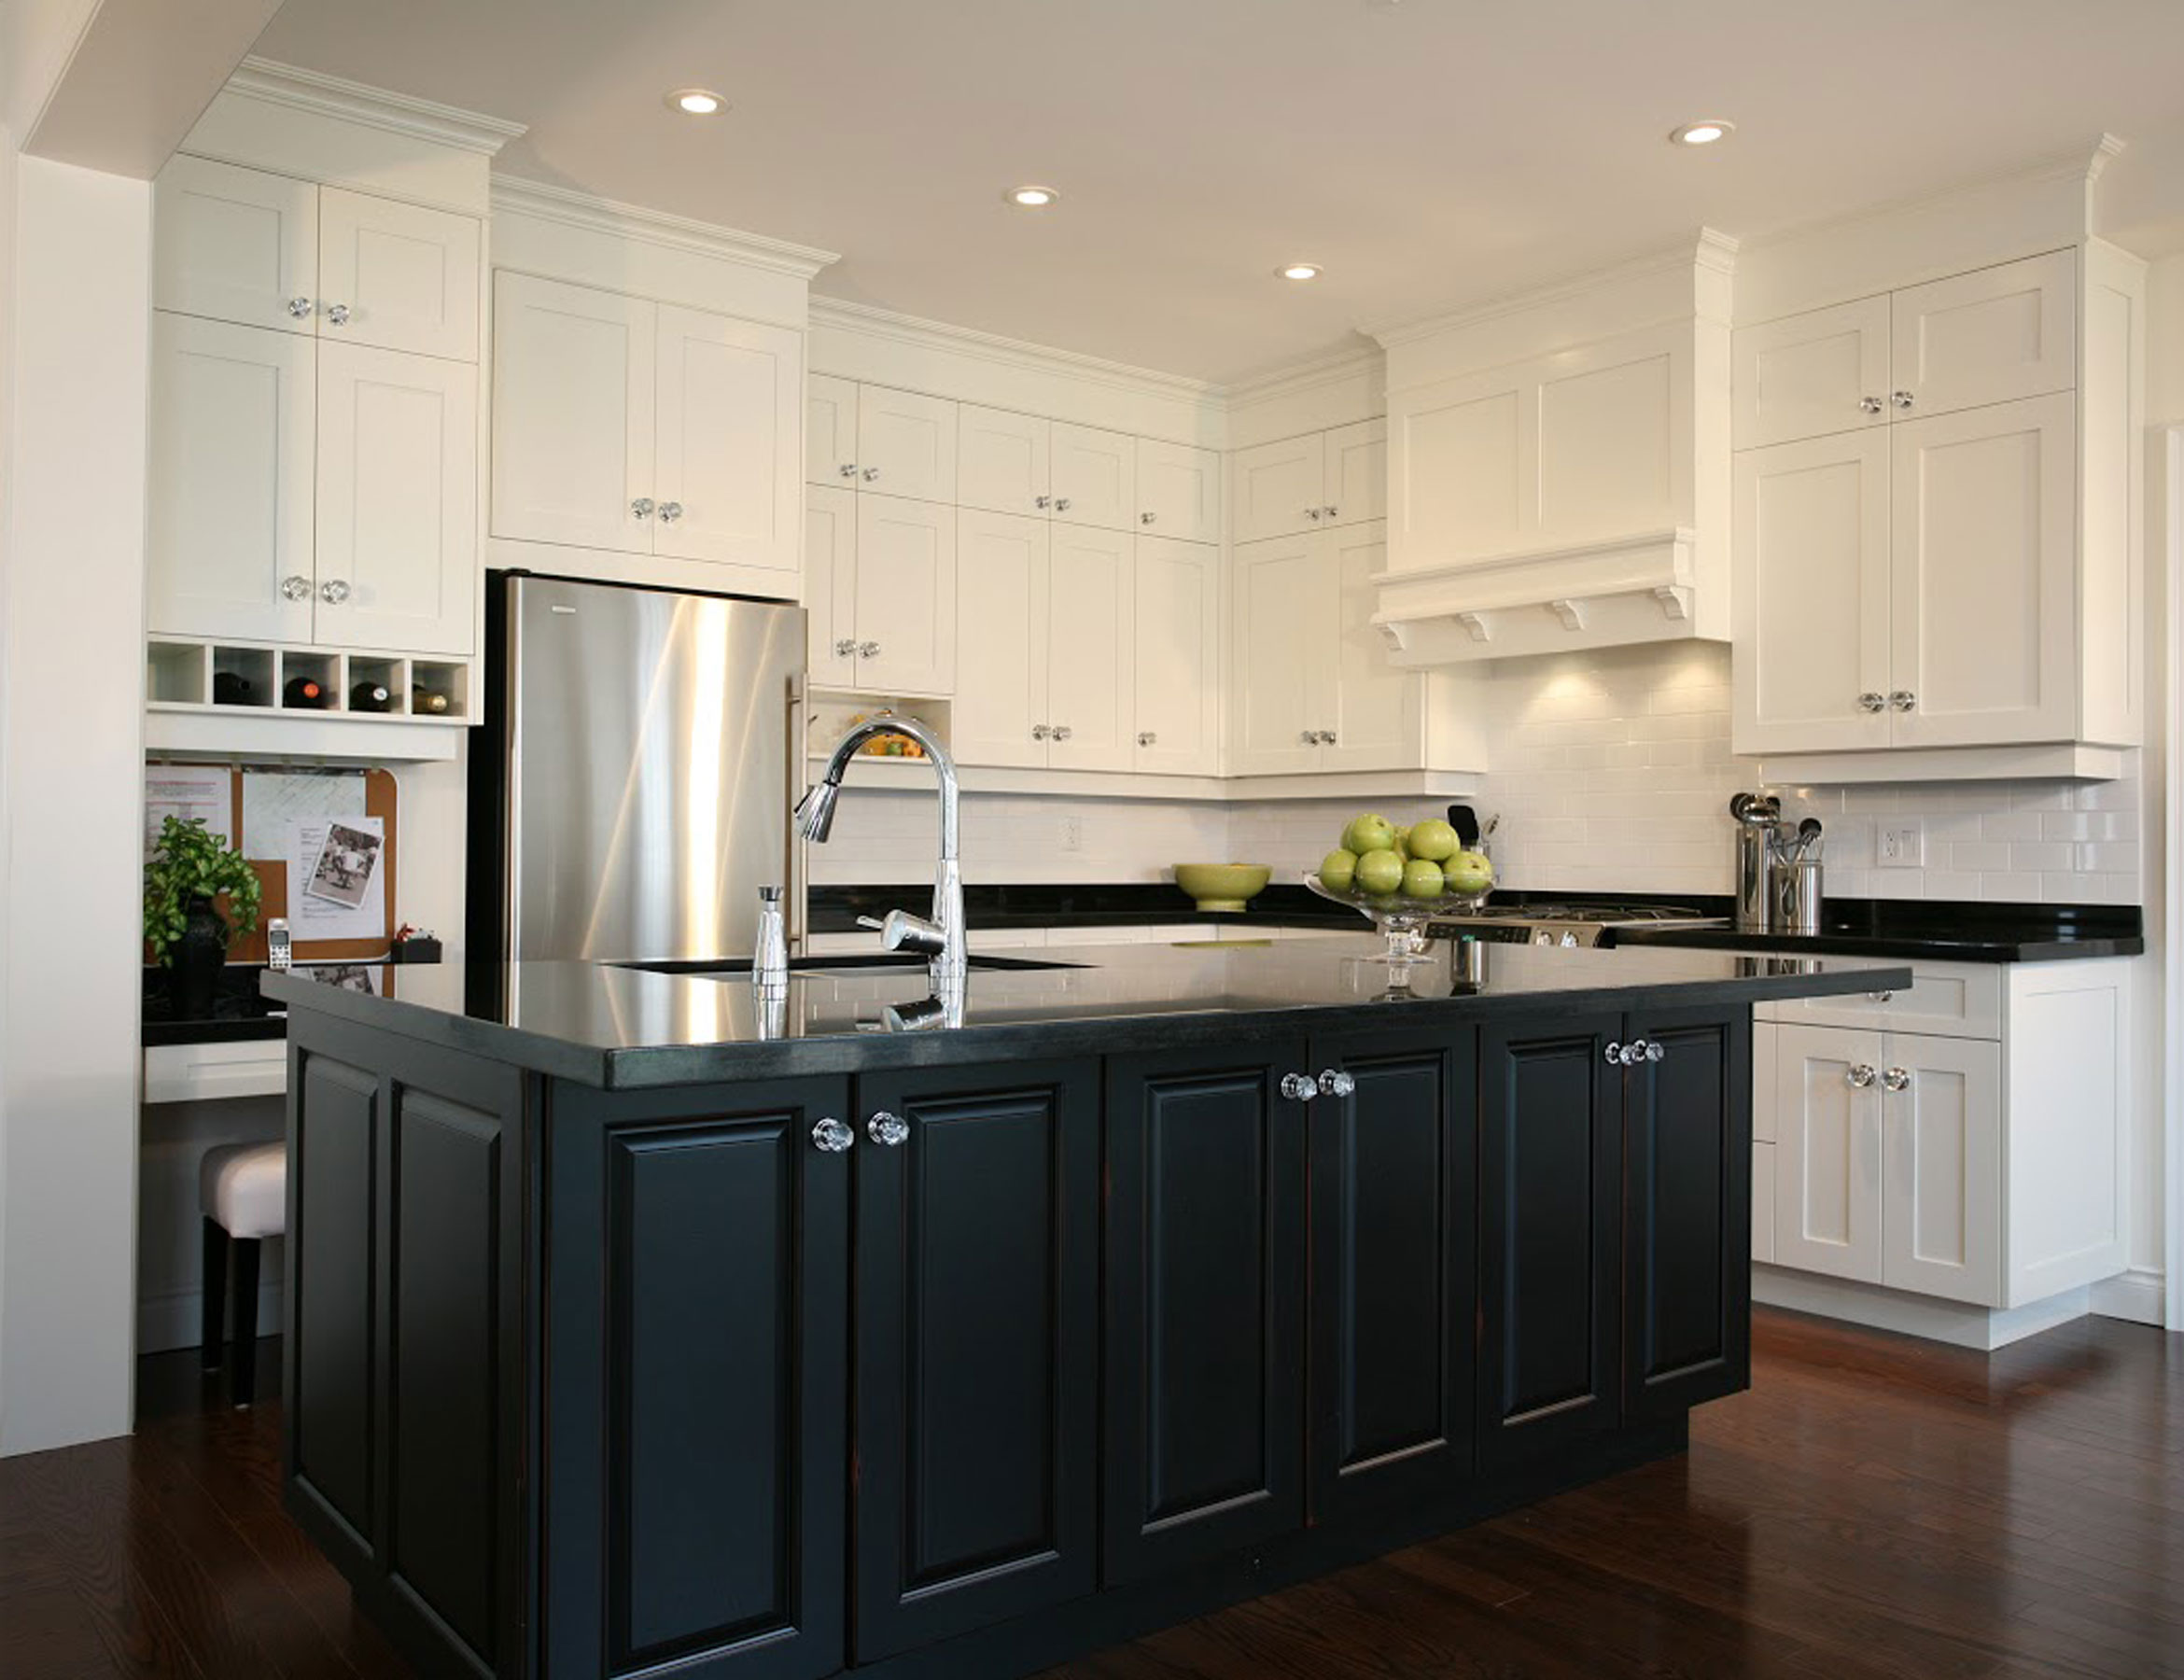 Kitchens Newmarket Custom Cabinetry Designs Renovations